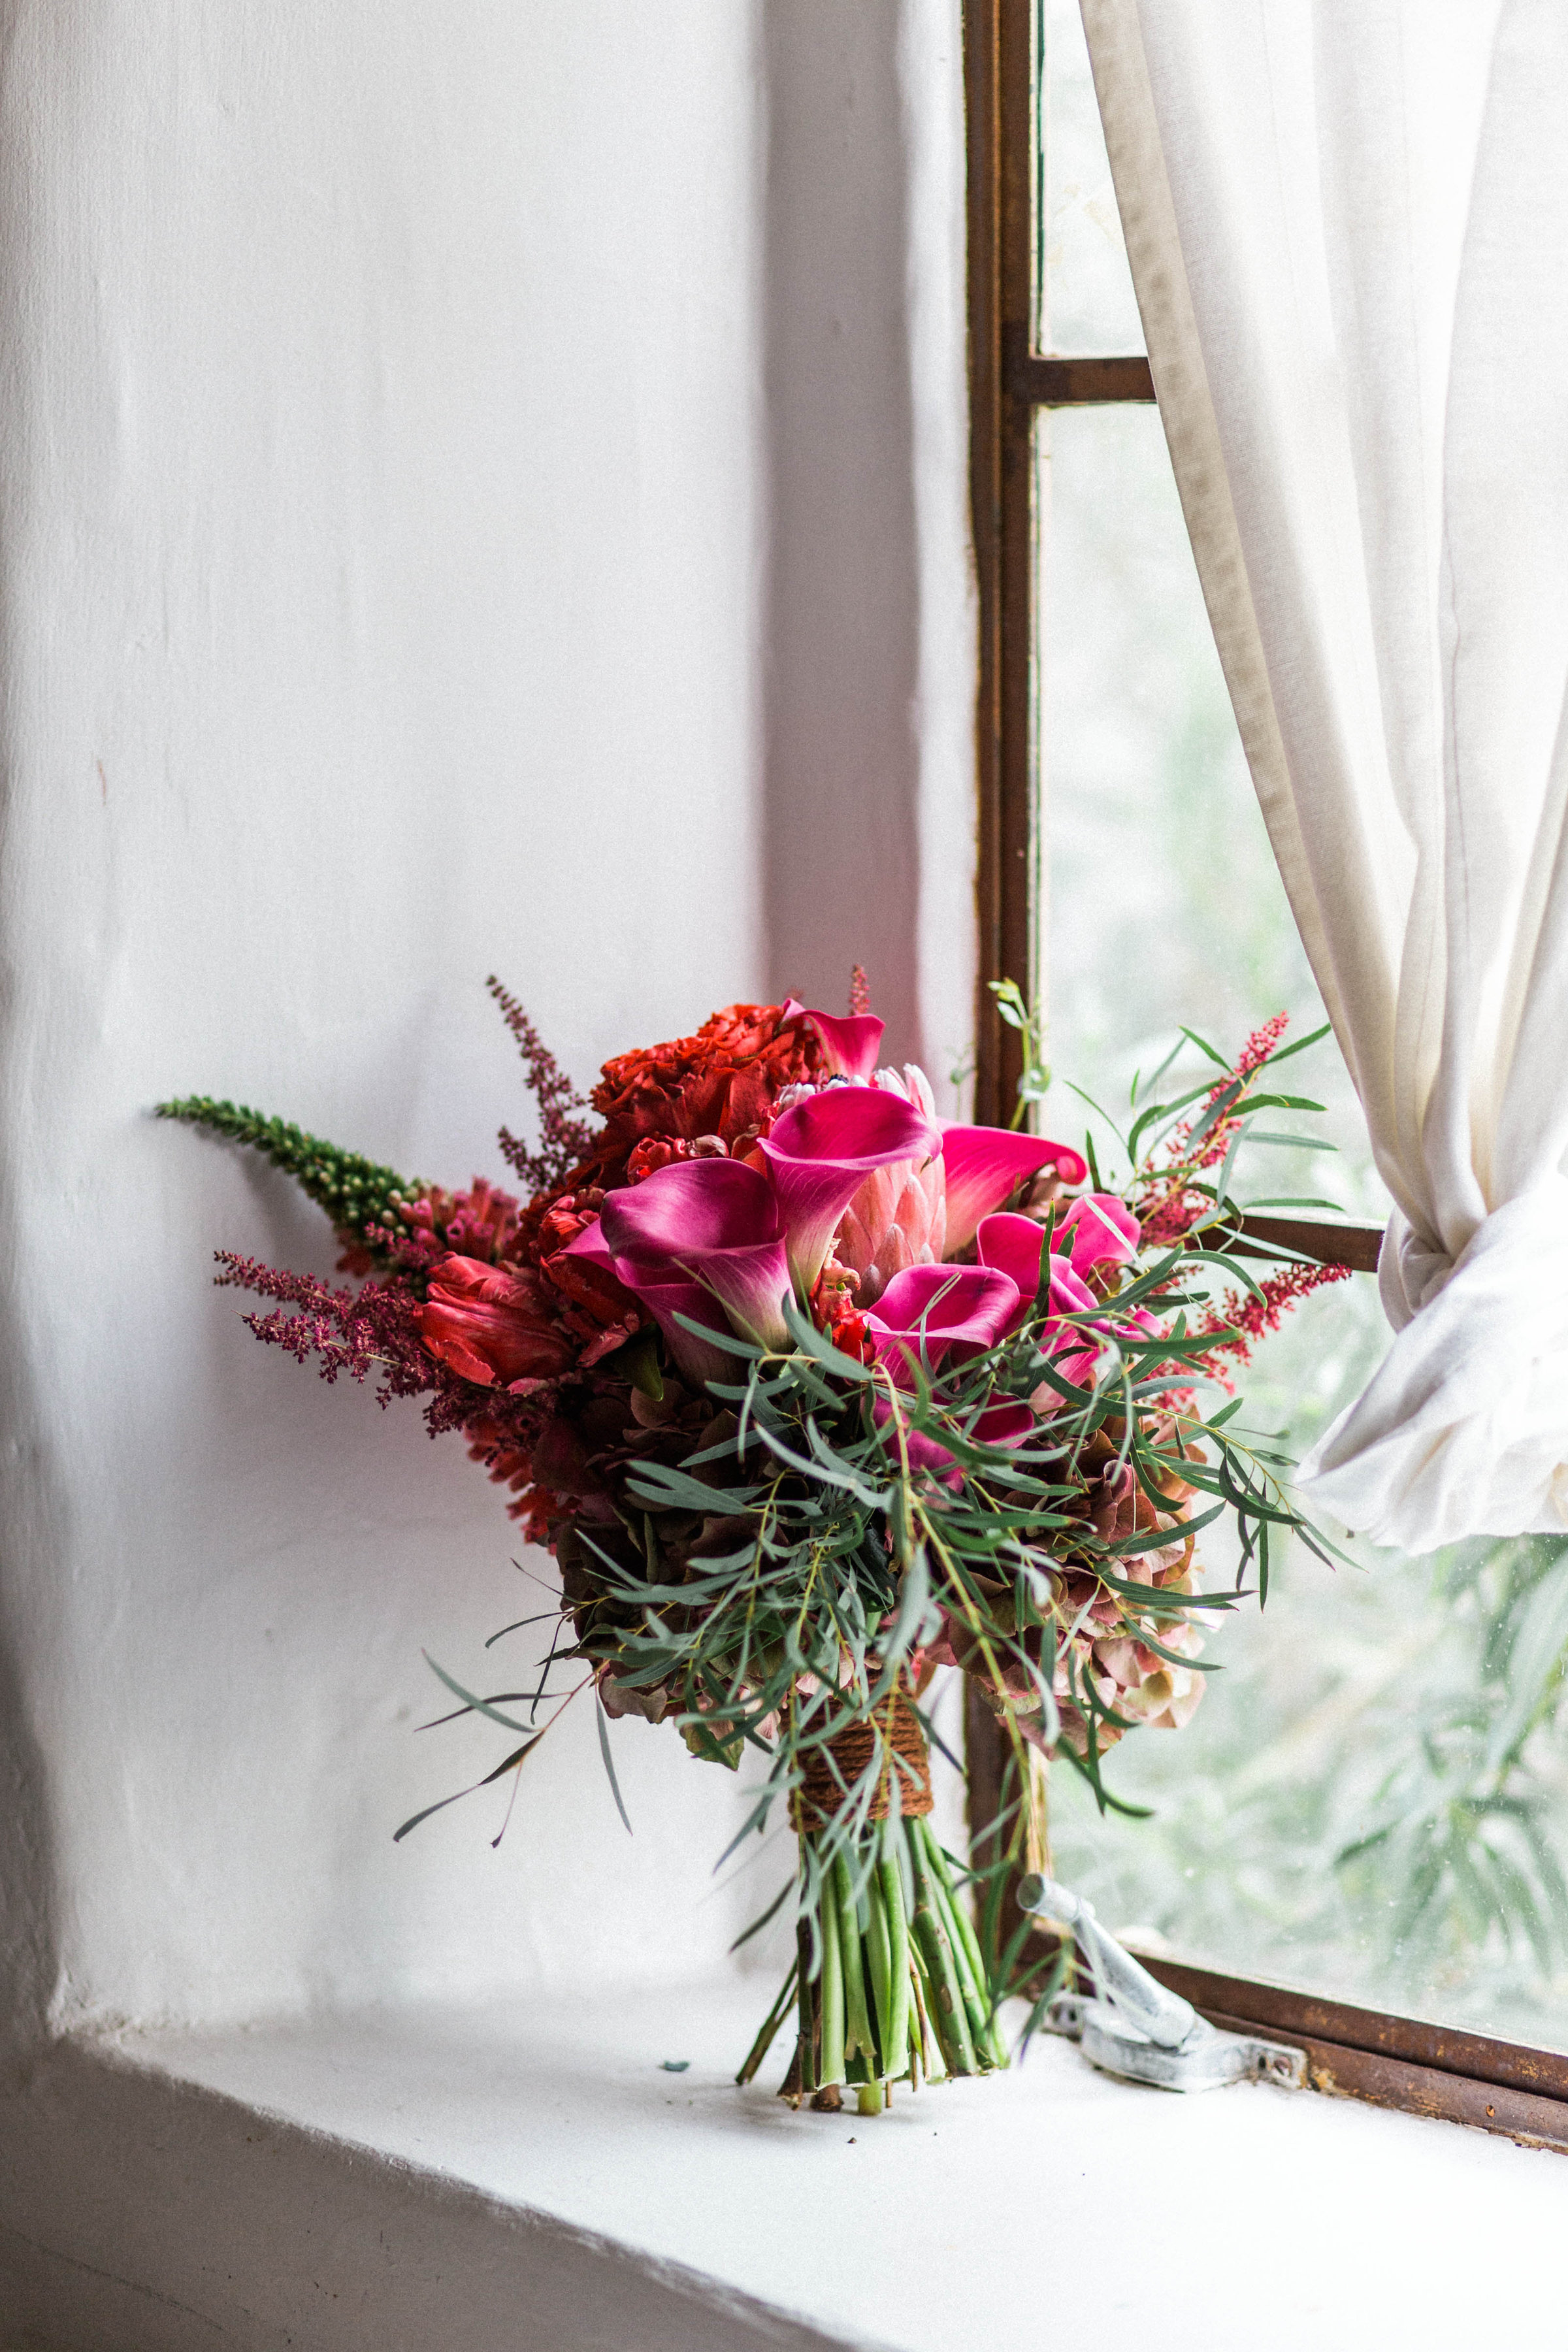 Vaso Bello bouquet photographed by  Sarah Falugo Photography